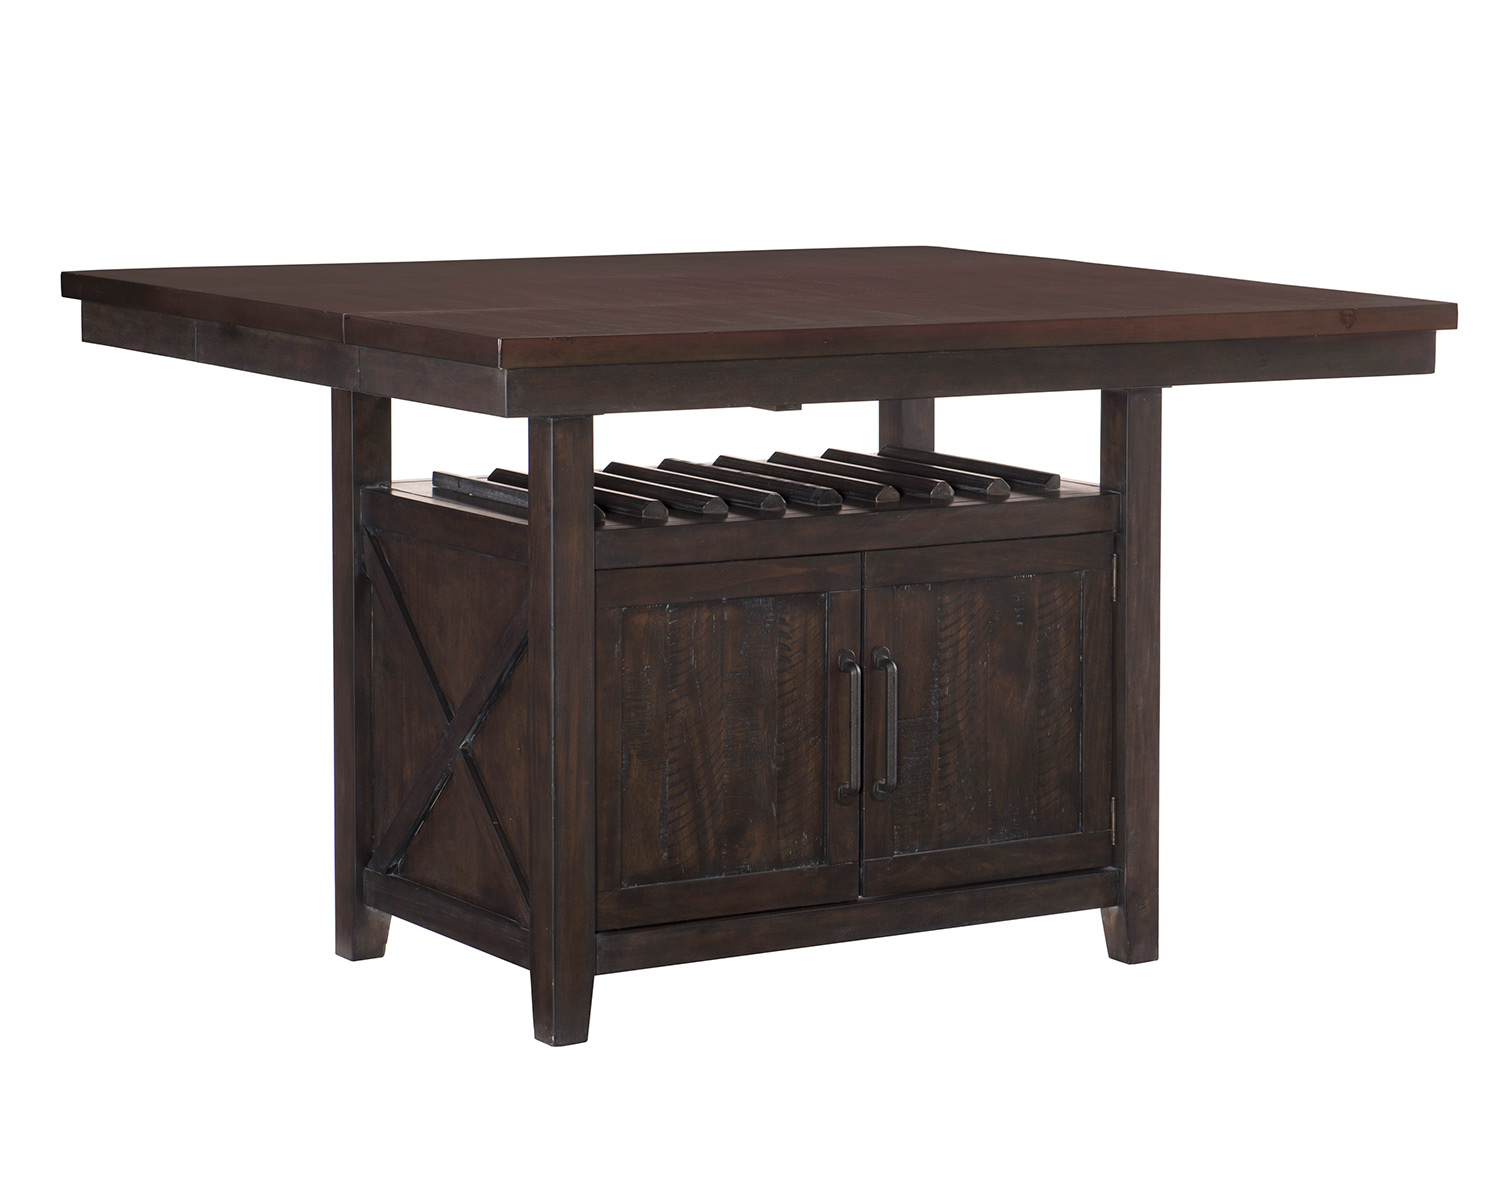 Homelegance Oxton Counter Height Table with Storage Base - Rustic Brown